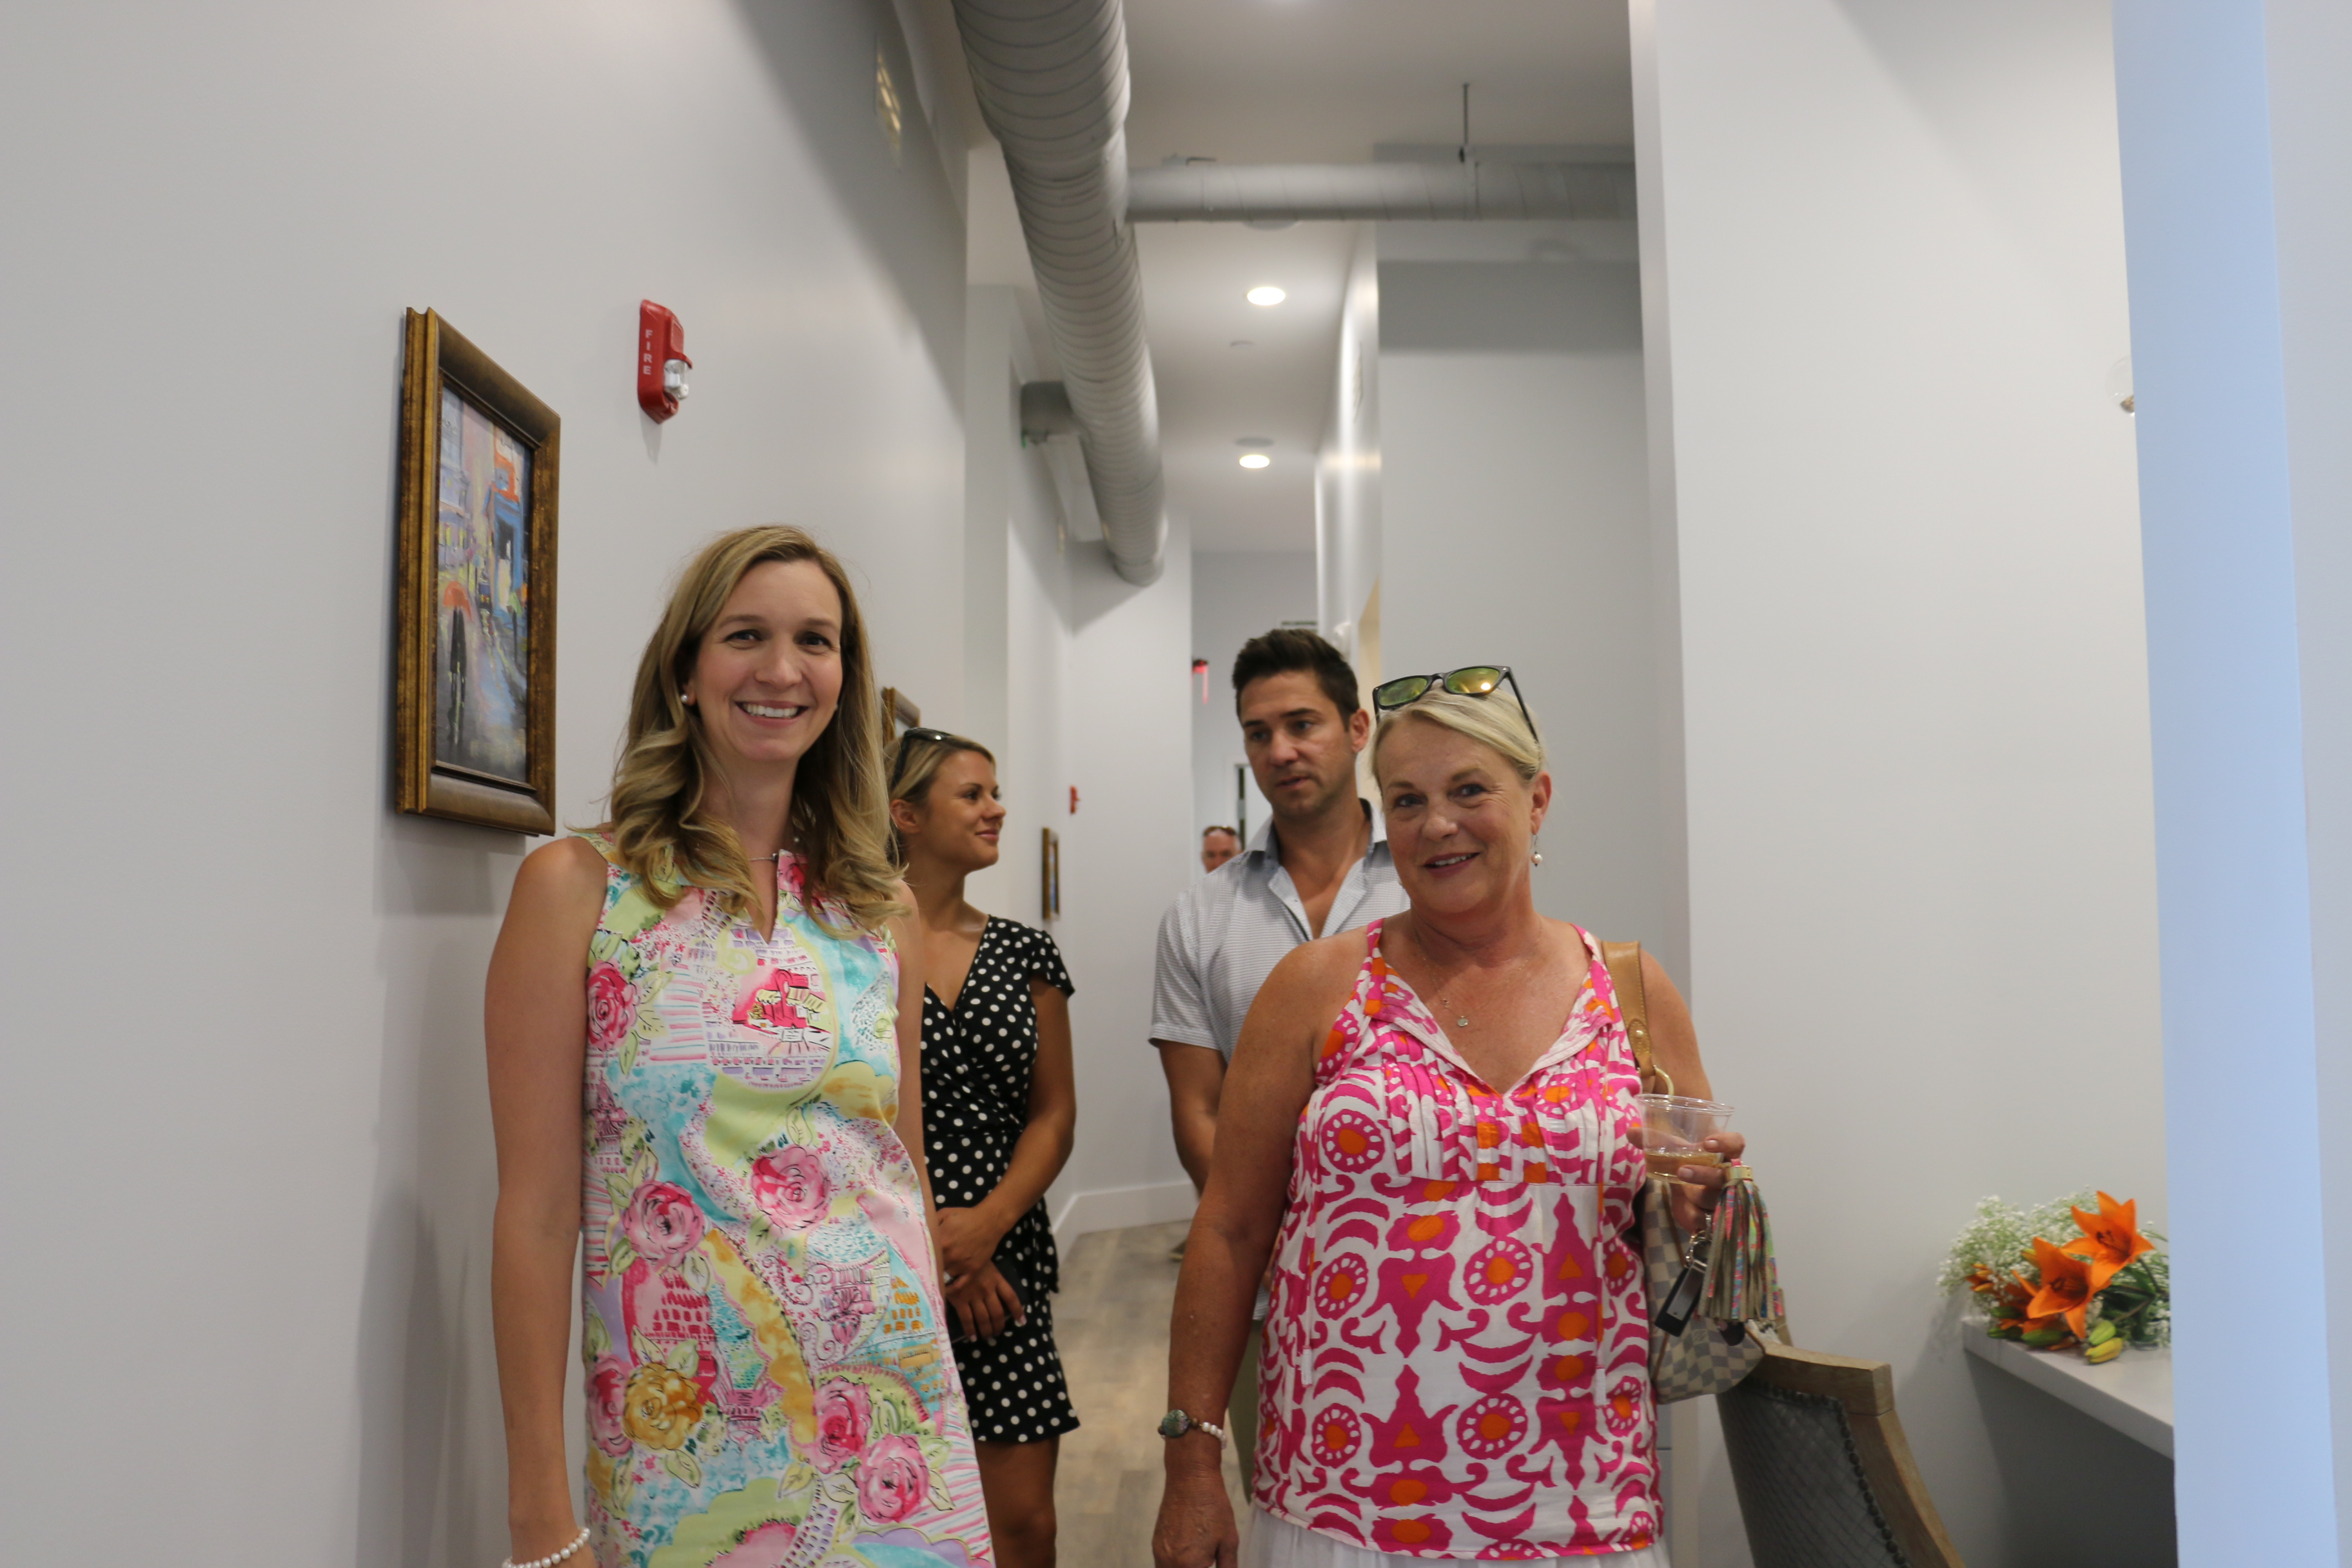 Dr. Zechmann gave tours of the new facility.